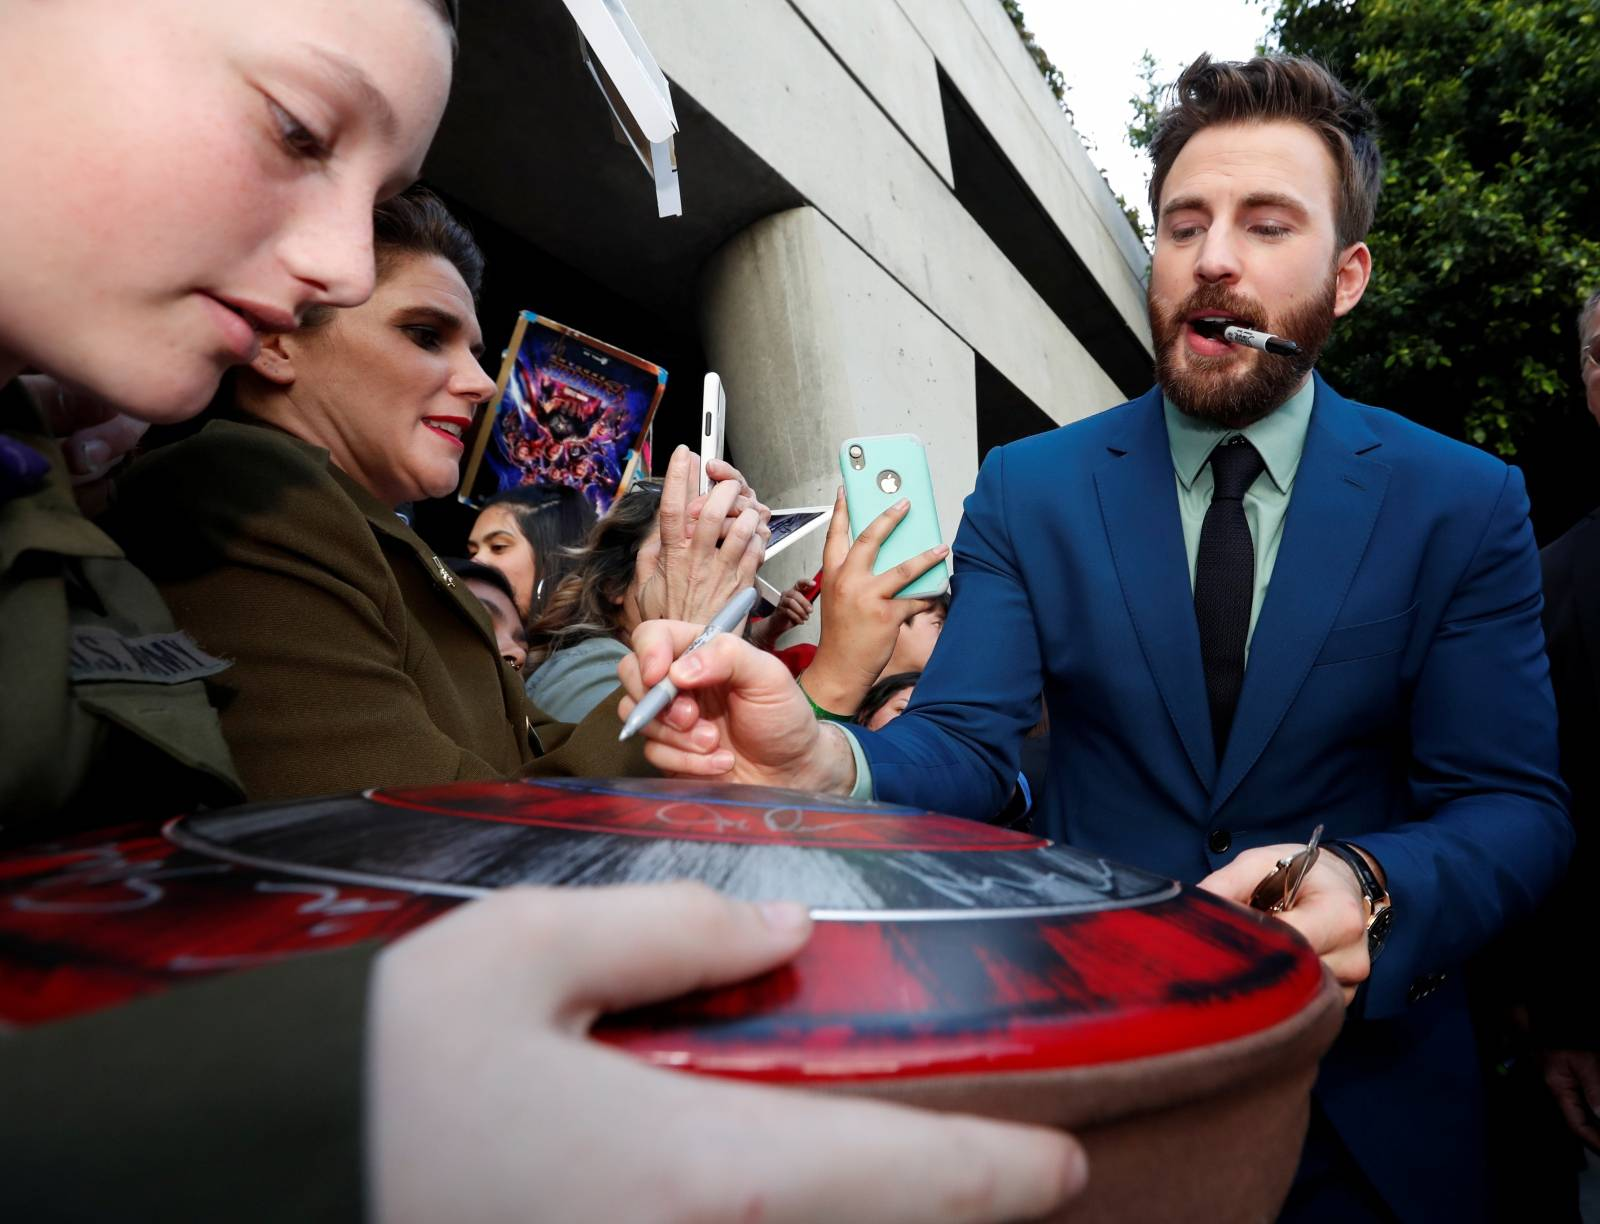 """Cast member Chris Evans signs autographs for fans on the red carpet at the world premiere of the film """"The Avengers: Endgame"""" in Los Angeles"""